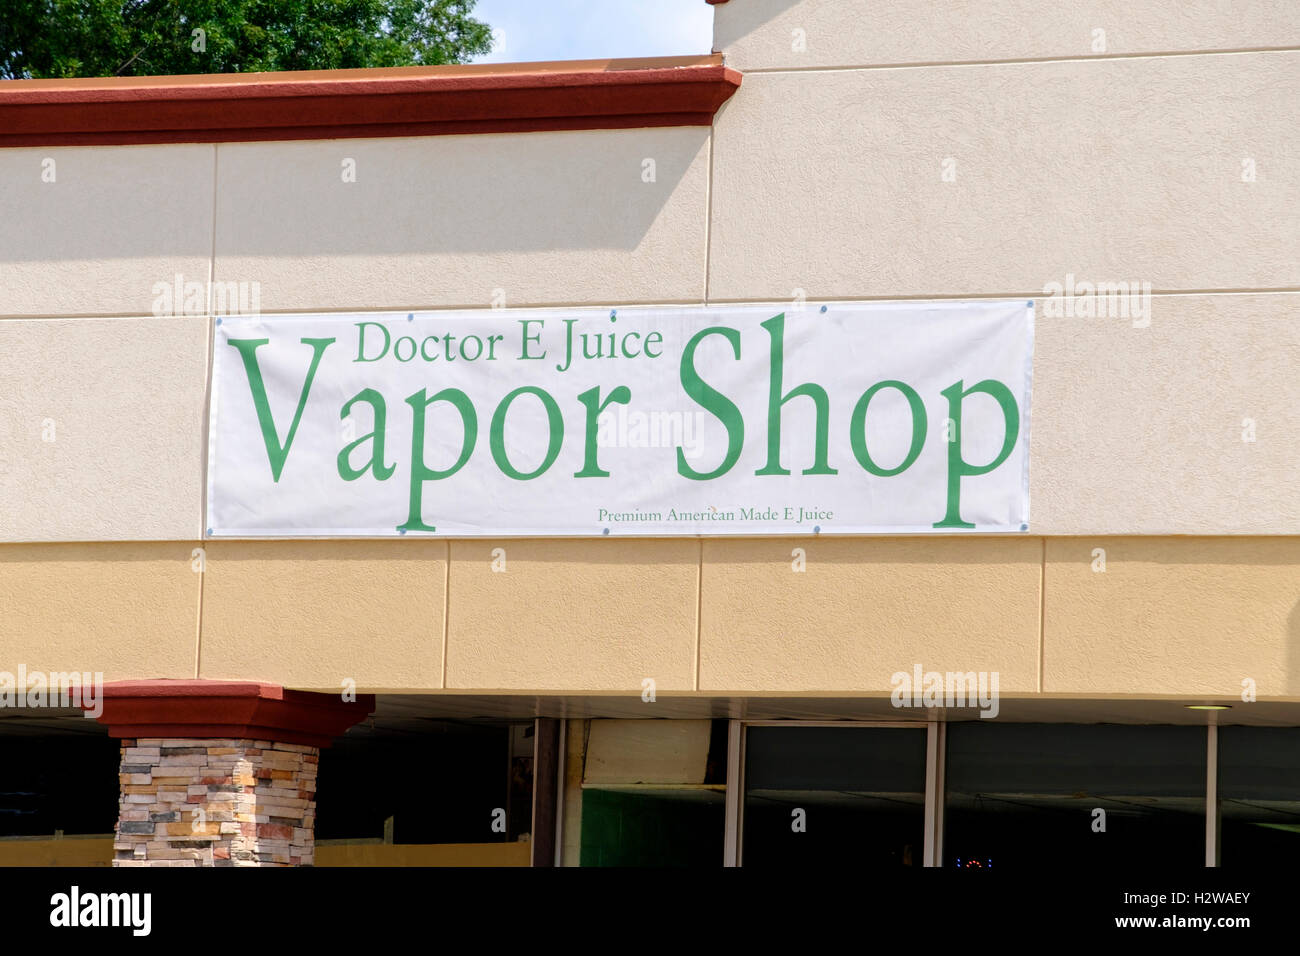 The storefront of a vapor shop in Oklahoma City, Oklahoma, USA. - Stock Image